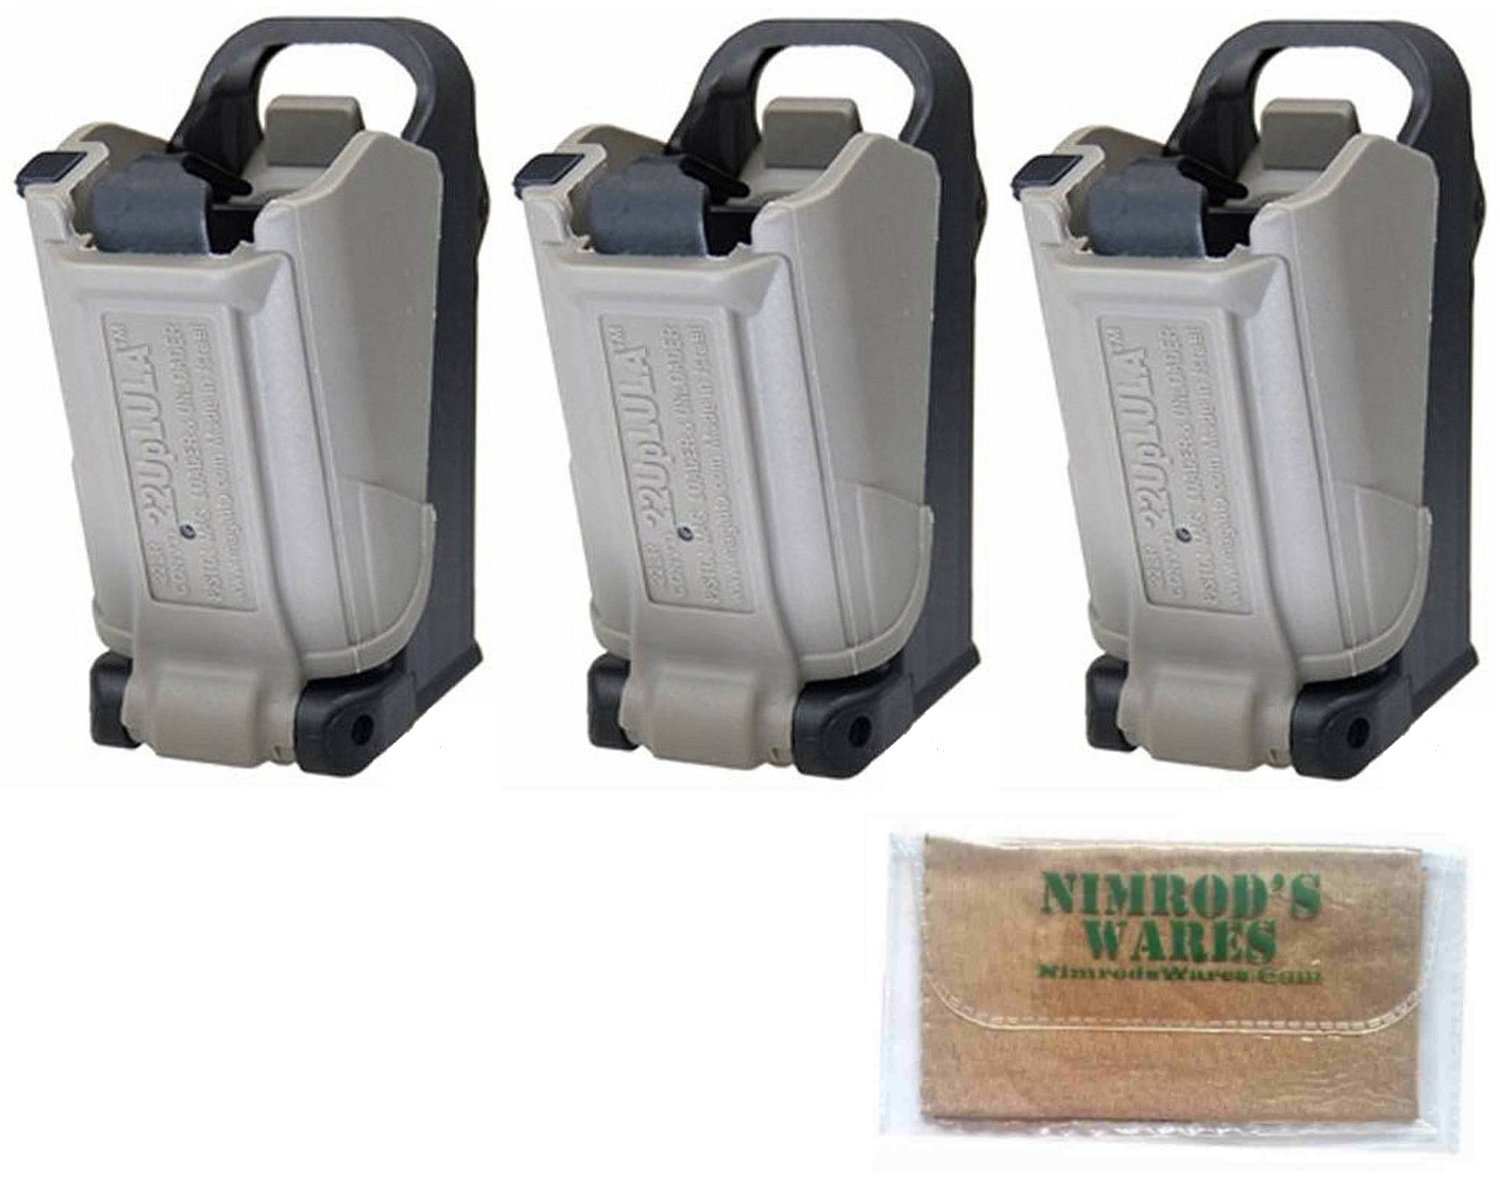 Nimrod's Wares 3-Pack Butler Creek 24224 LULA Loaders 22LR Wide-Body Double-Stack Mags Microfiber Cloth